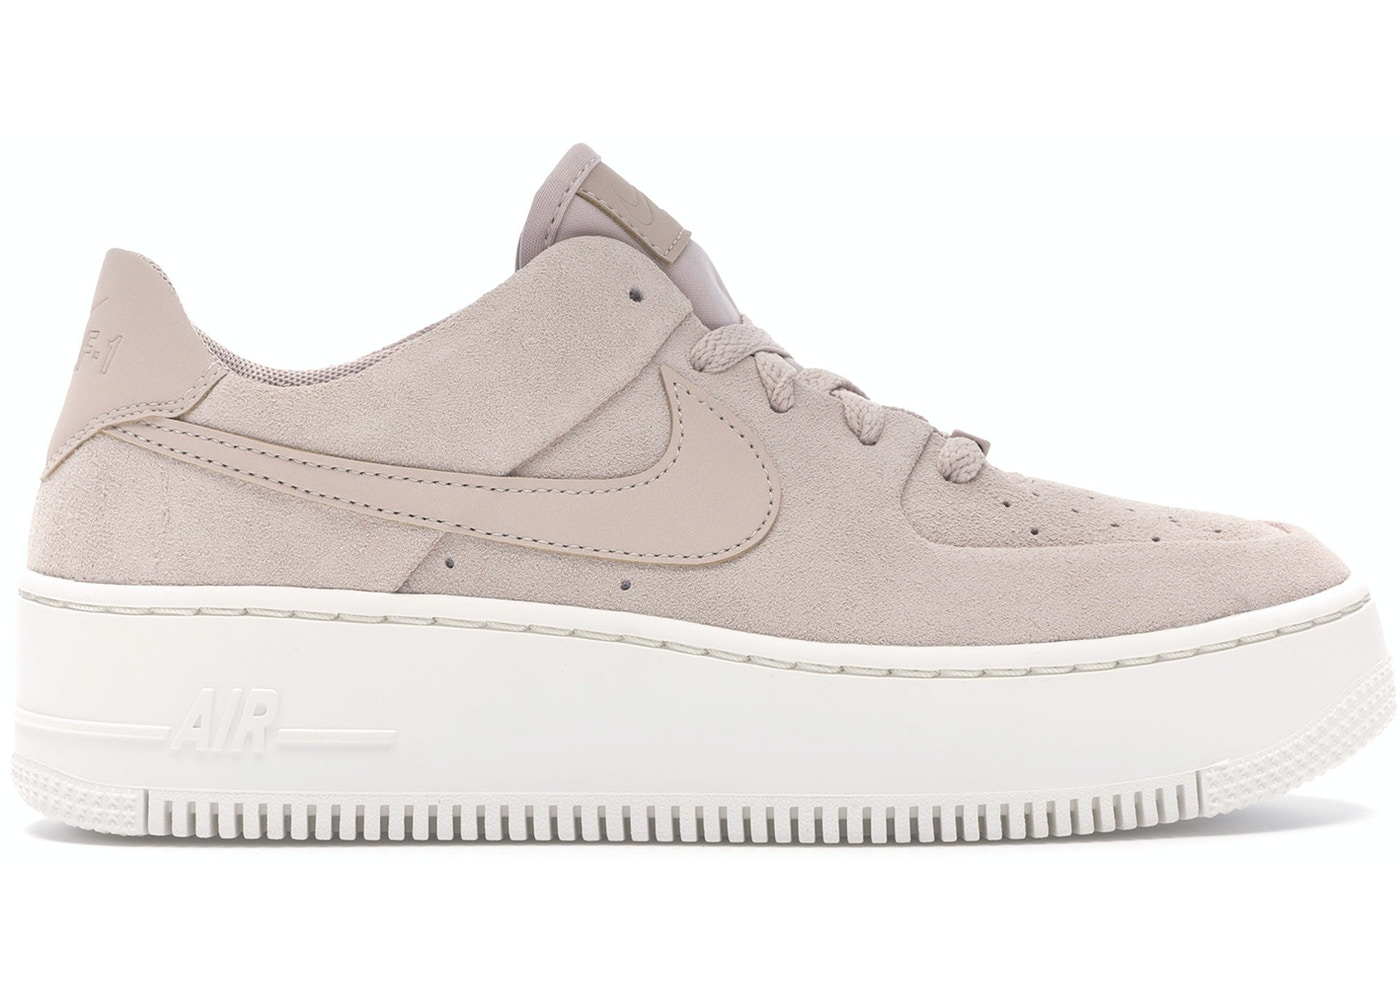 half off fc93a 8726d Air Force 1 Sage Low Particle Beige (W)